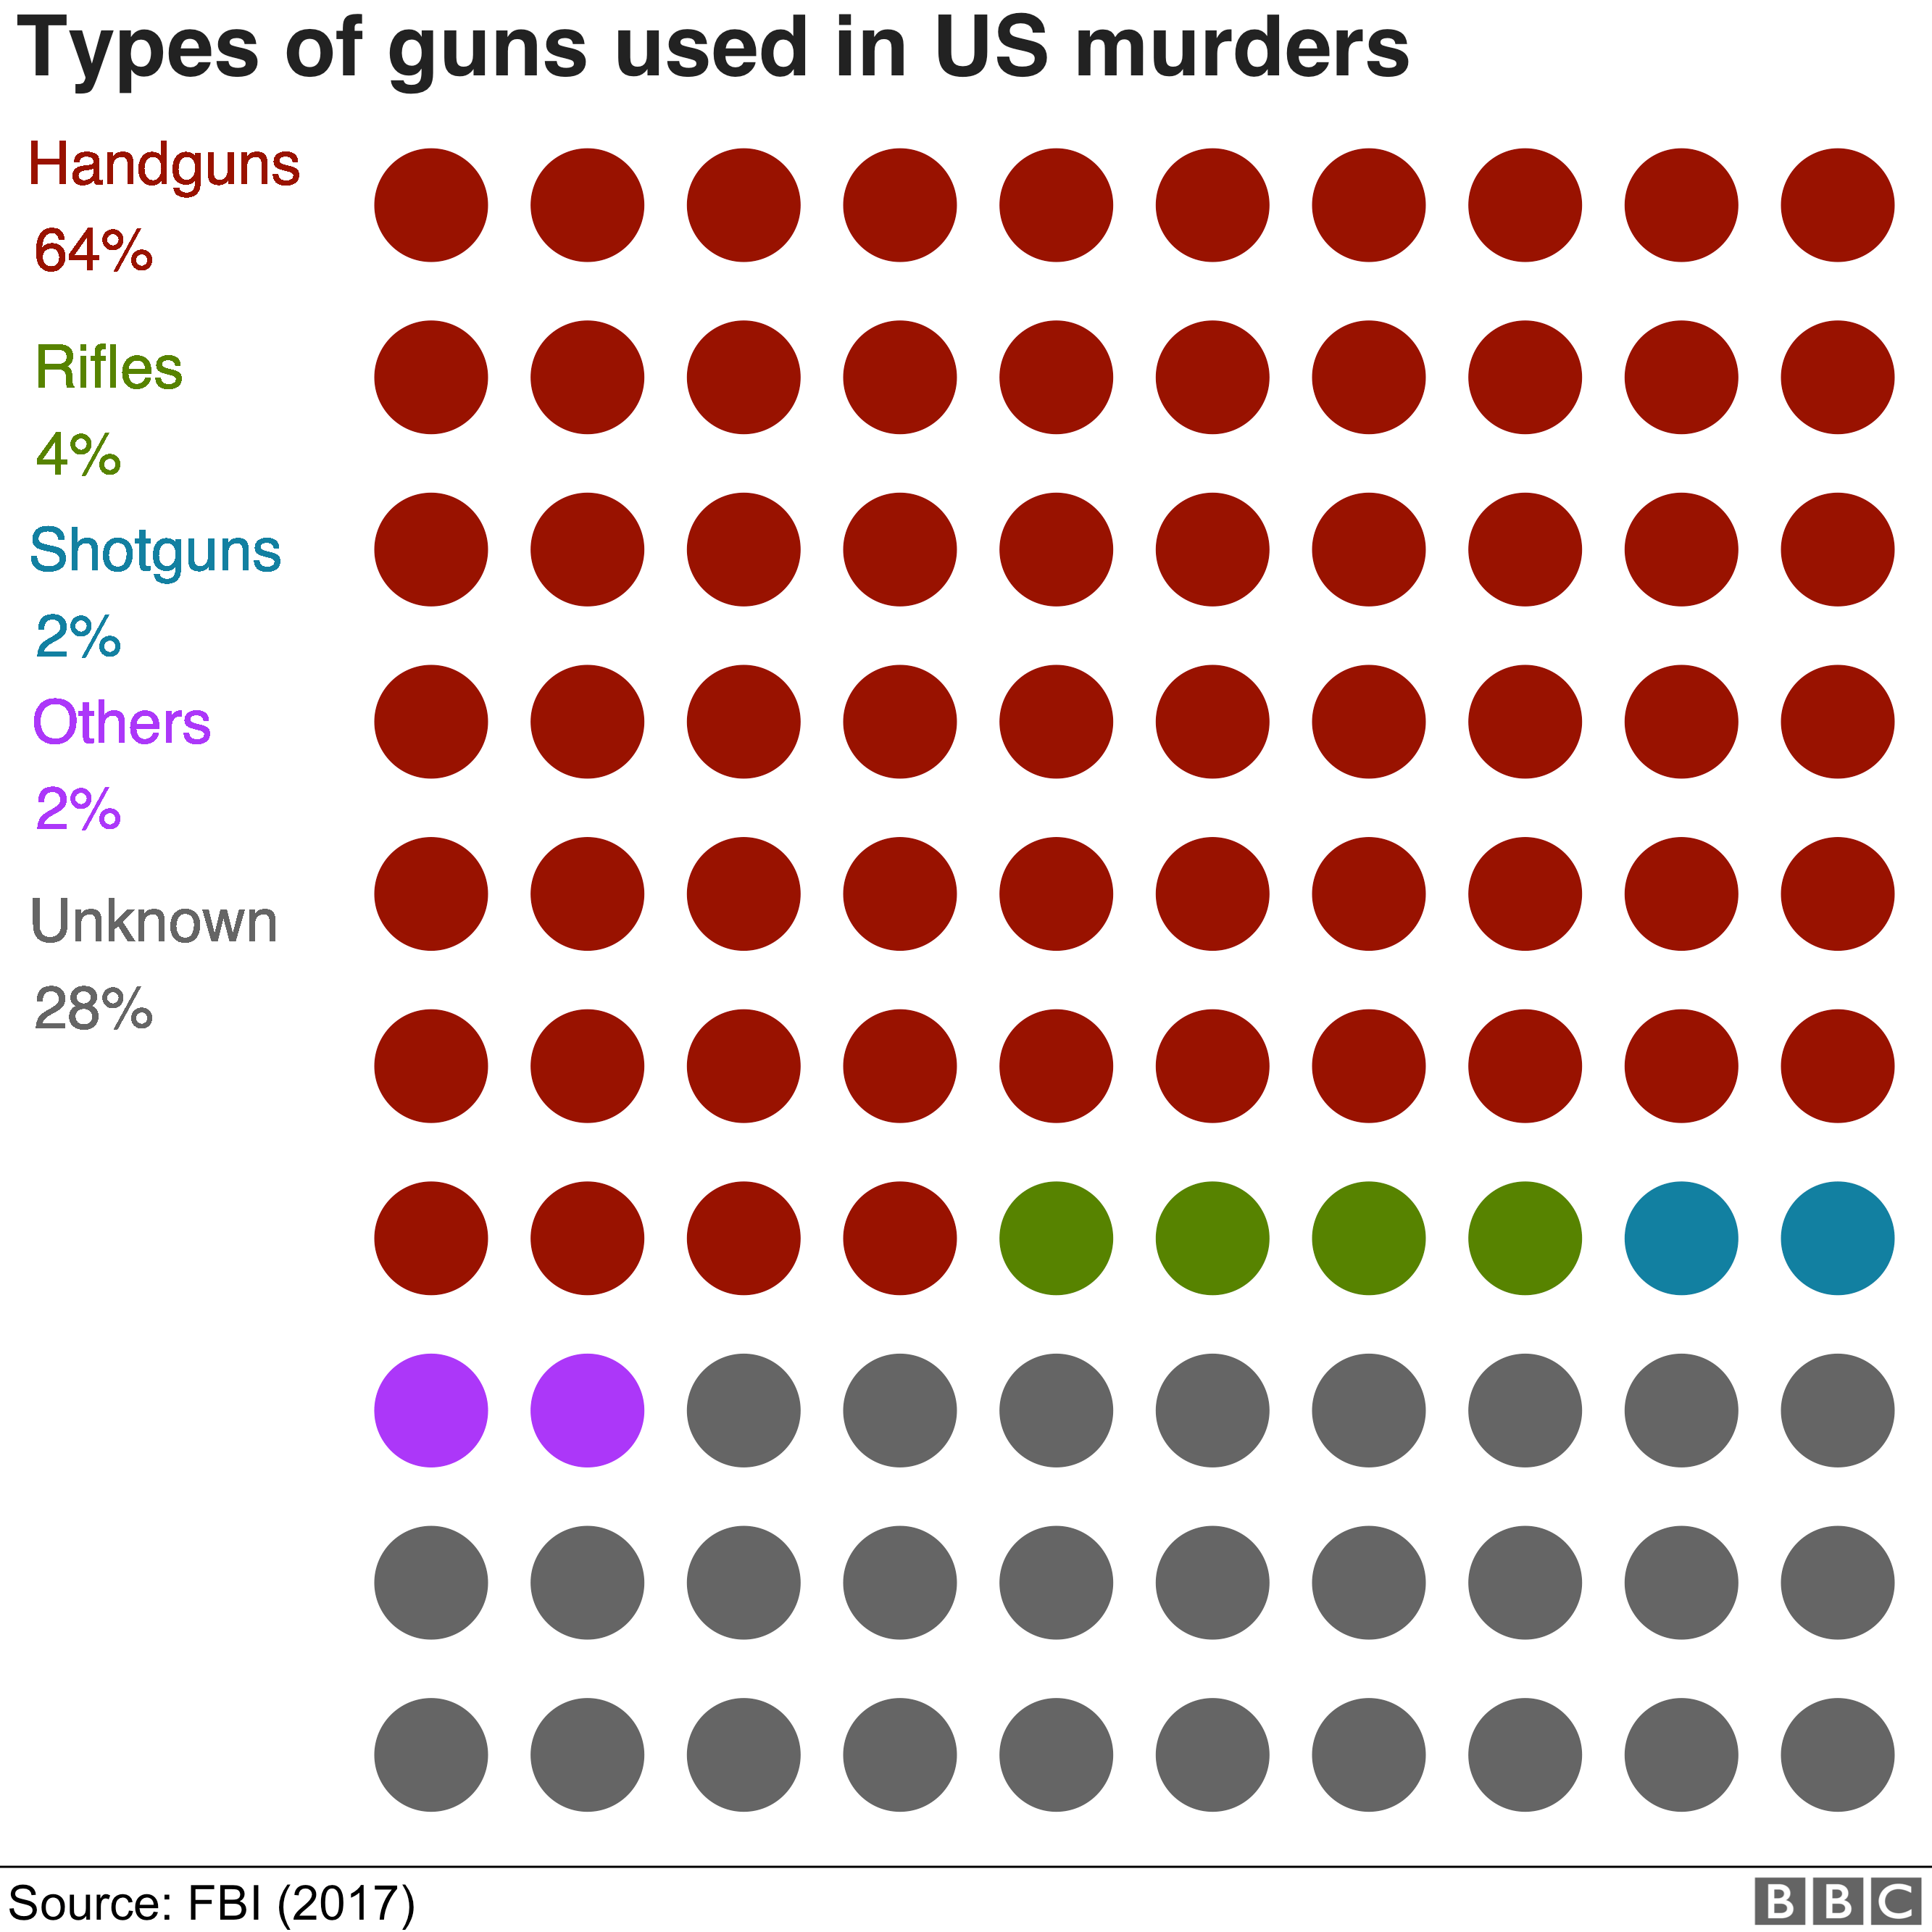 Chart showing types of guns used in US murders